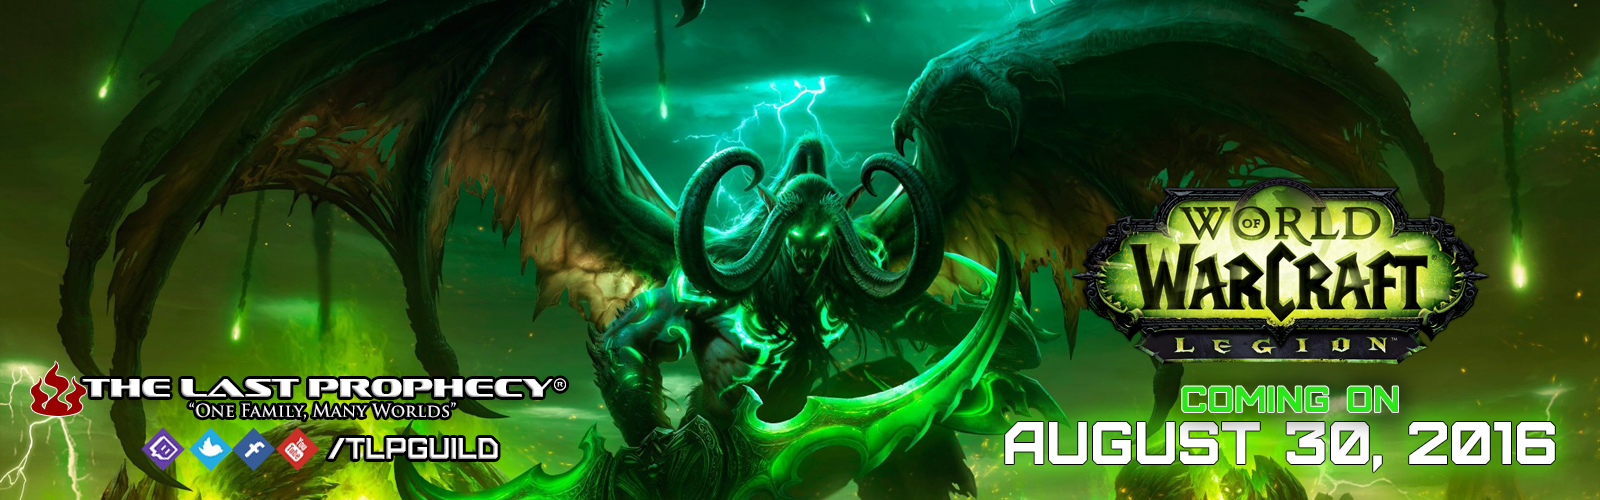 Legion Launches on August 30th